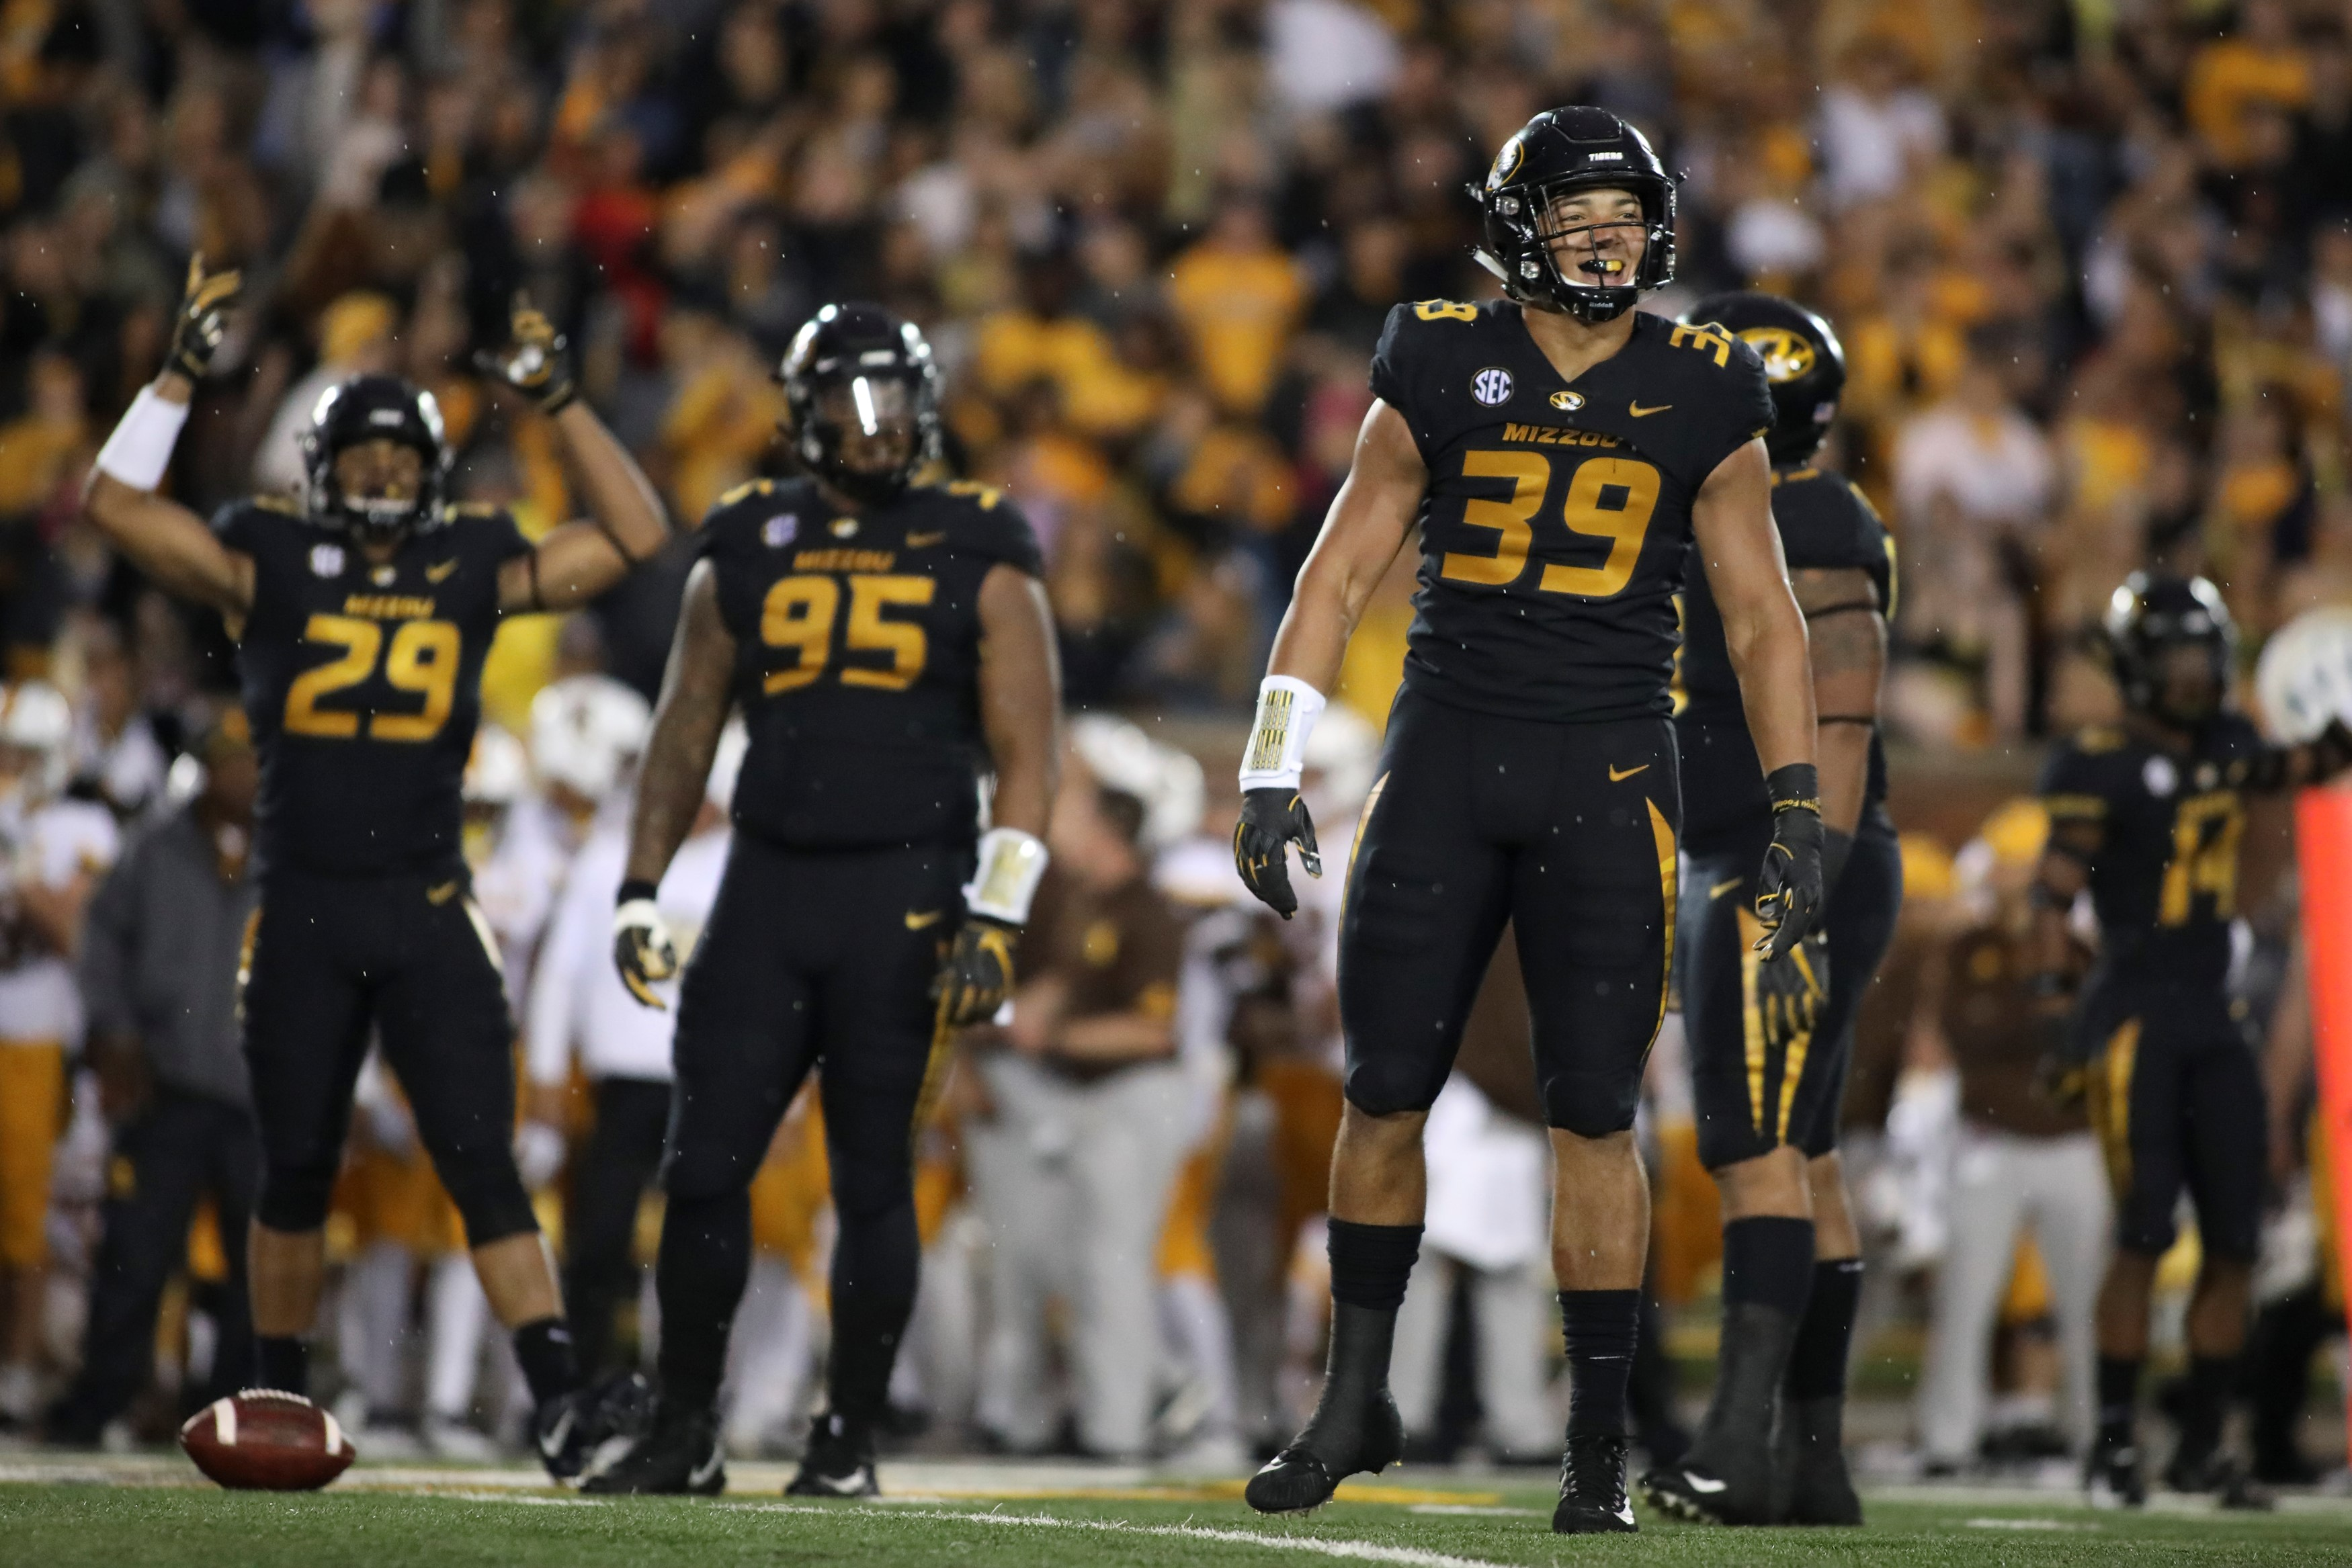 @MizzouFootball Faces First Road Test of 2018 at Purdue